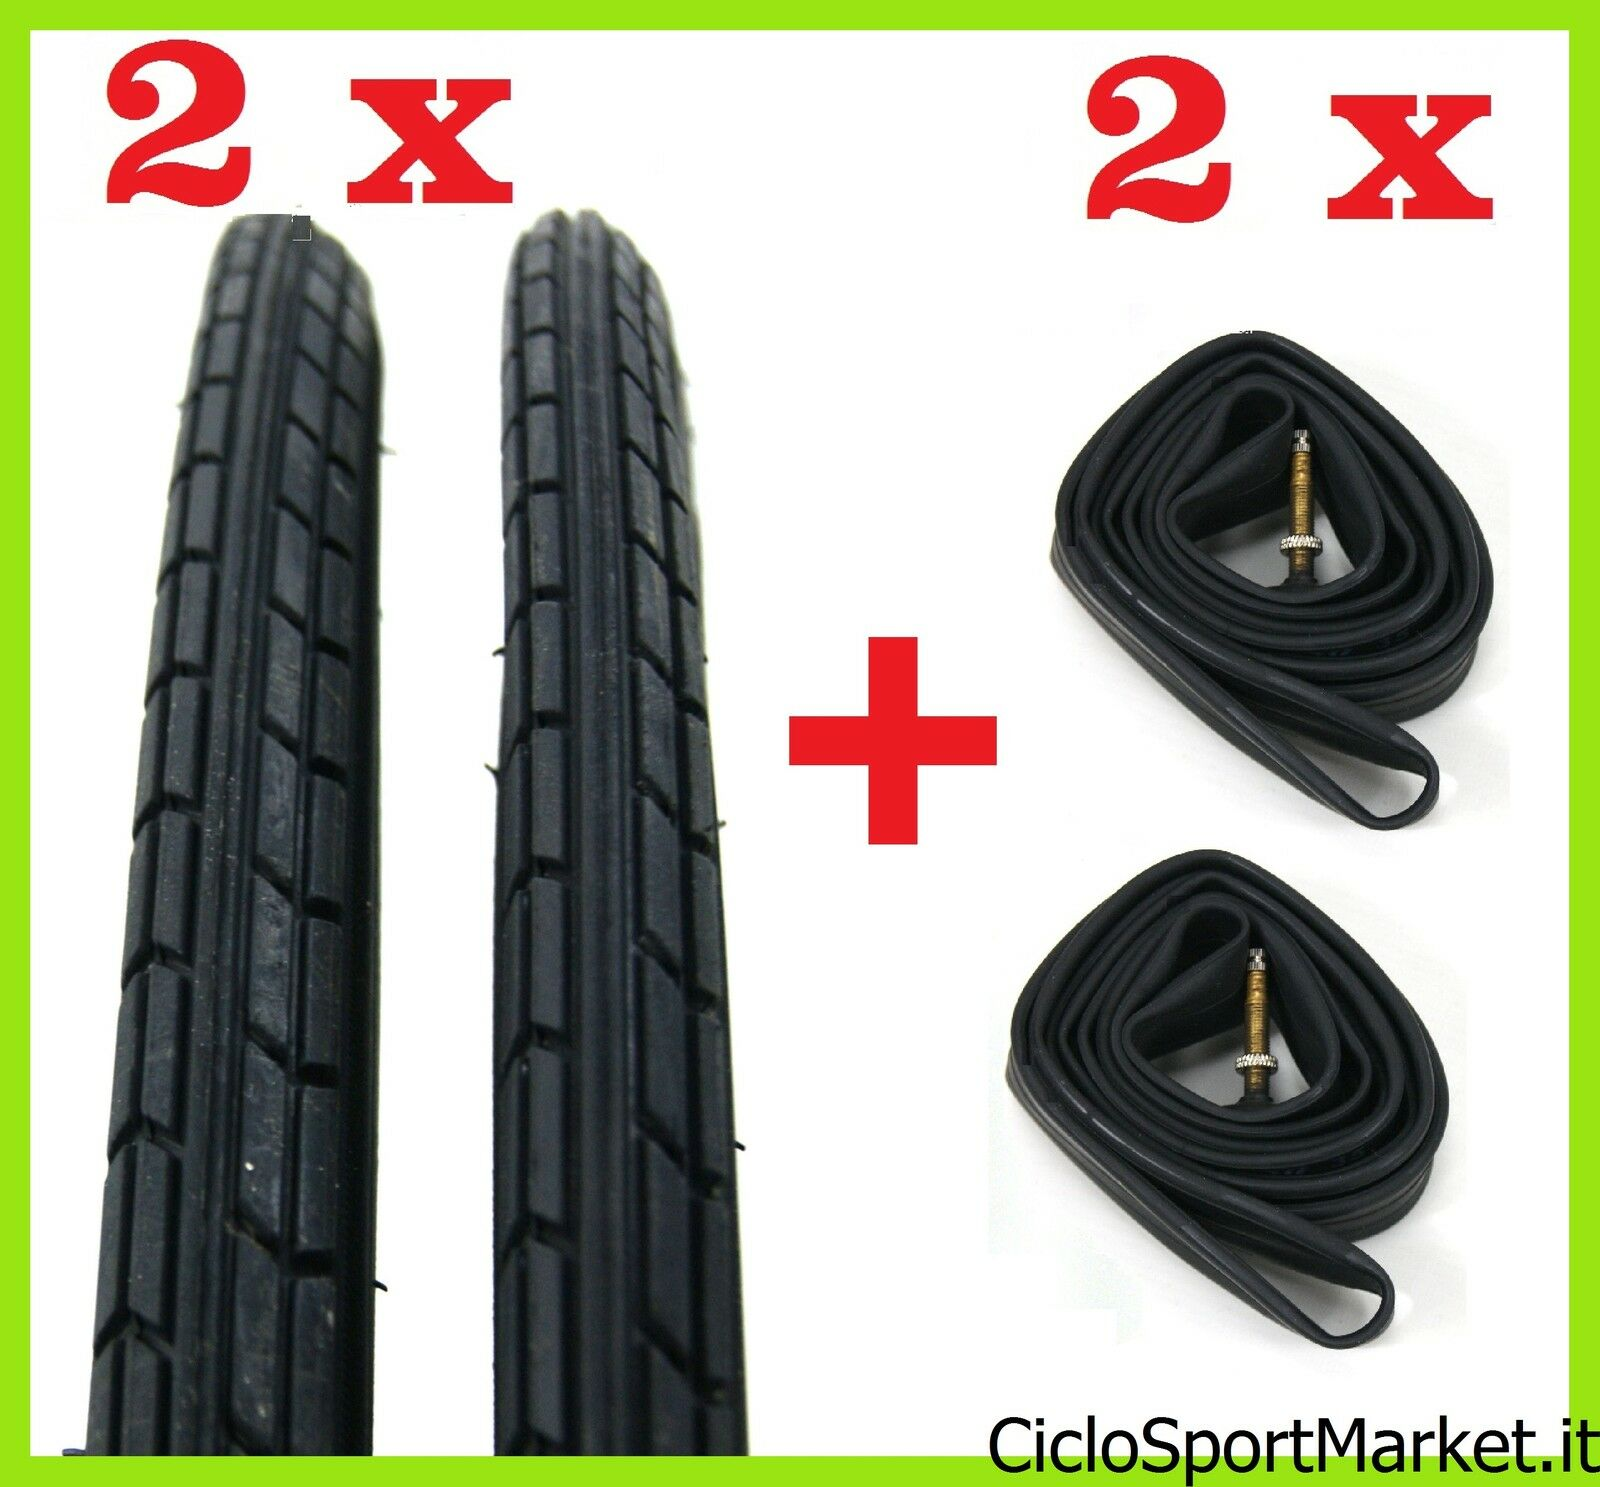 2 x Tyres + 2 x Inner tubes for bicycle bike   Size 26  x 1 3 8 black